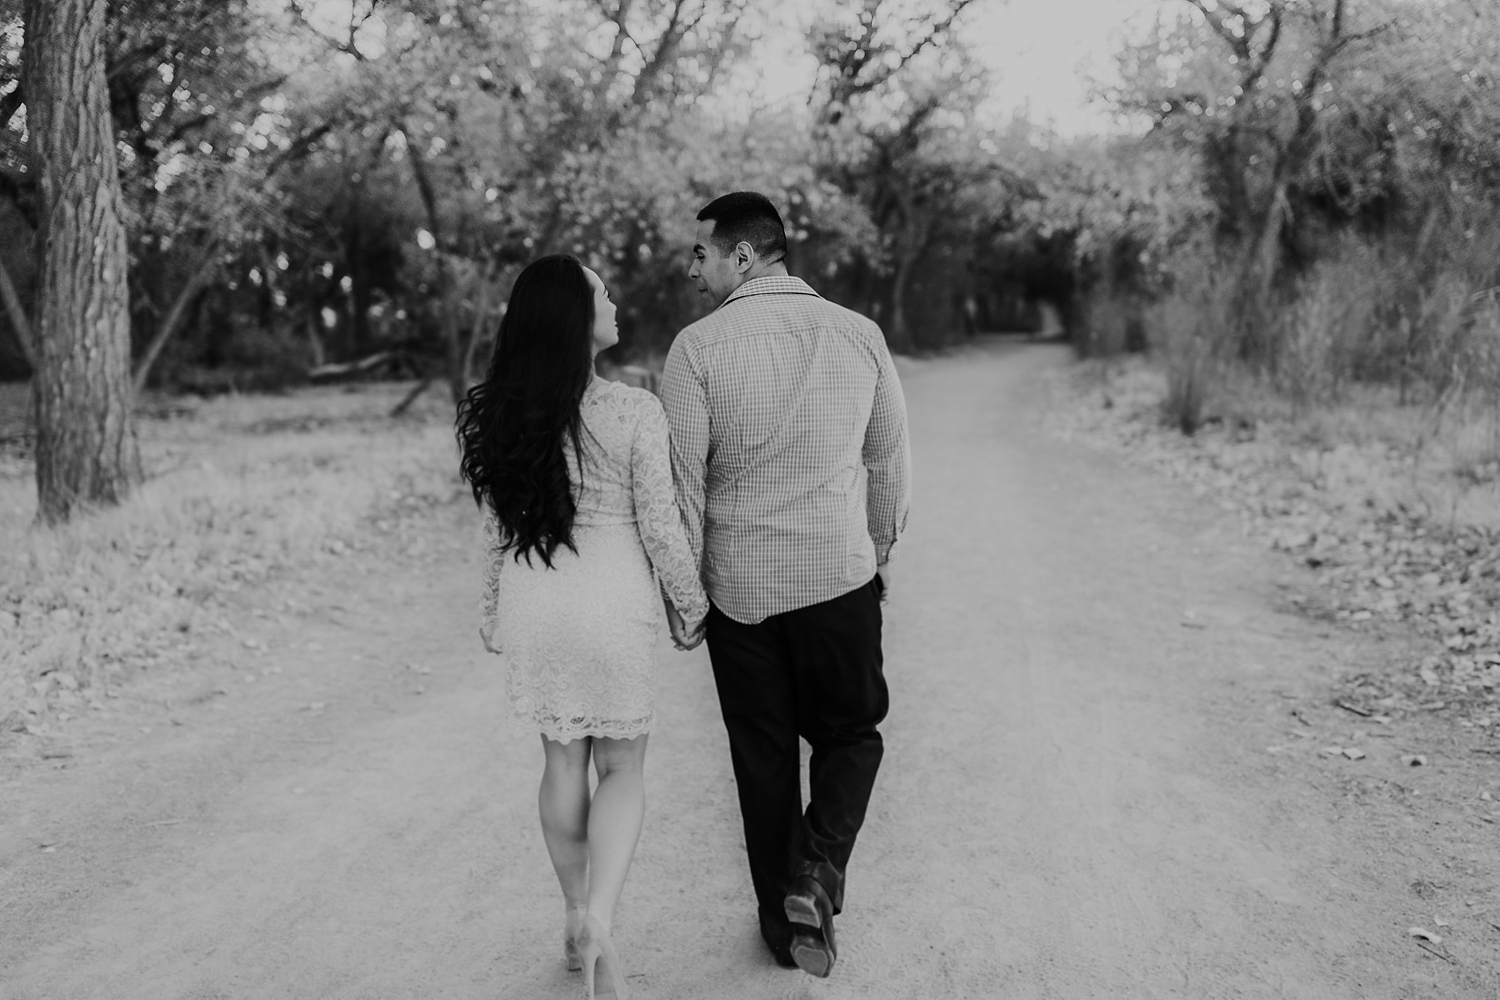 Alicia+lucia+photography+-+albuquerque+wedding+photographer+-+santa+fe+wedding+photography+-+new+mexico+wedding+photographer+-+albuquerque+winter+engagement+session_0020.jpg